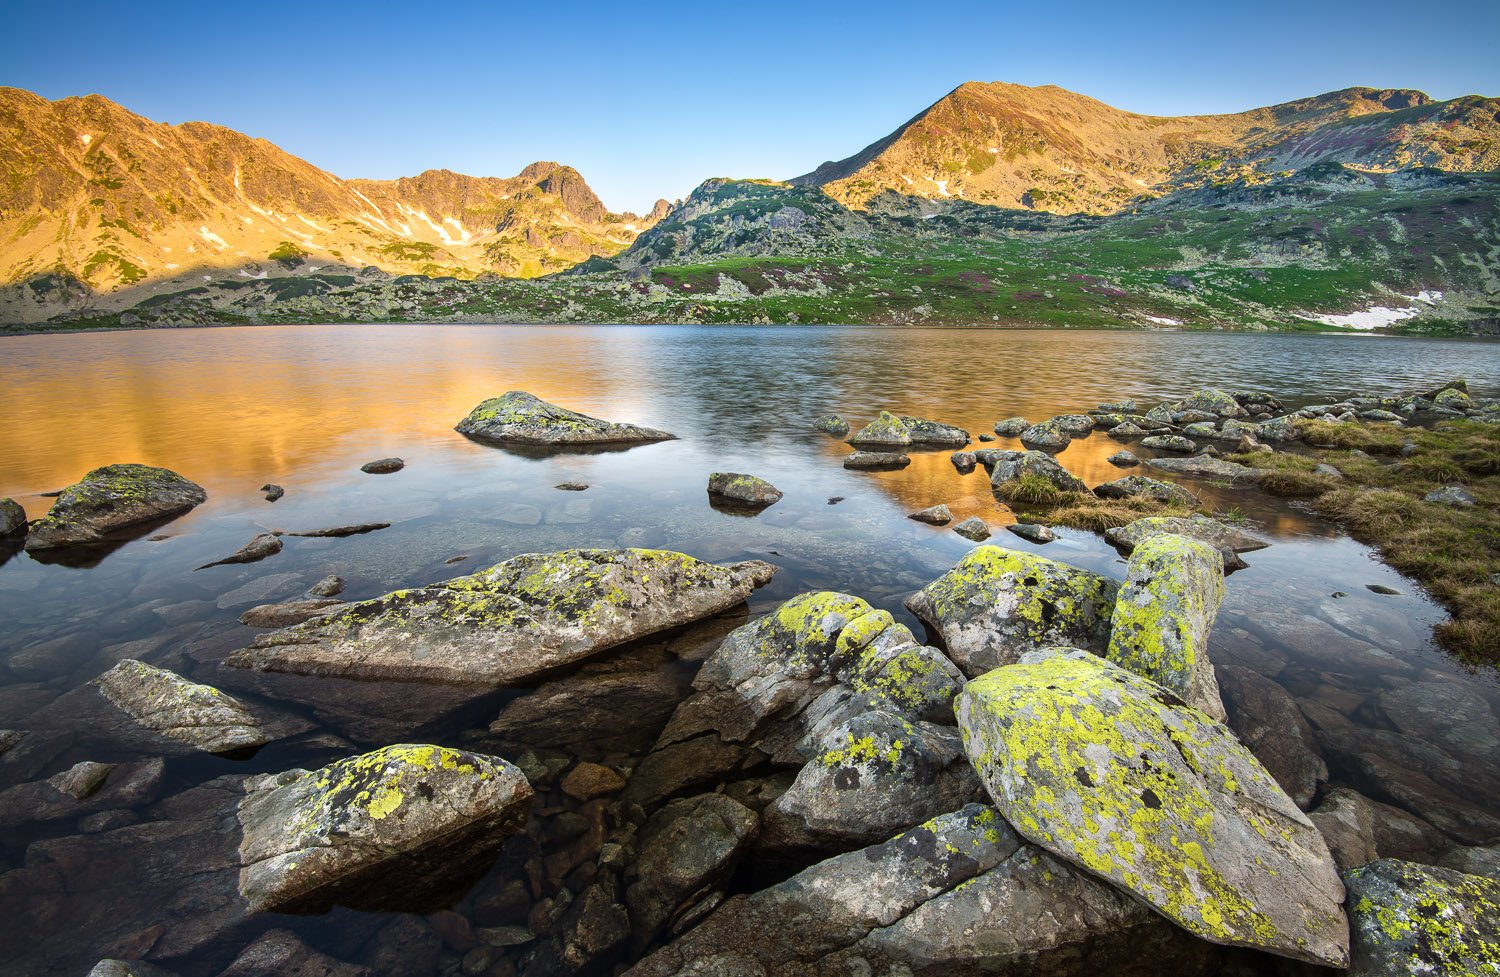 glacier lake, lake, mountain, stone, sunrise, Ioan Chiriac